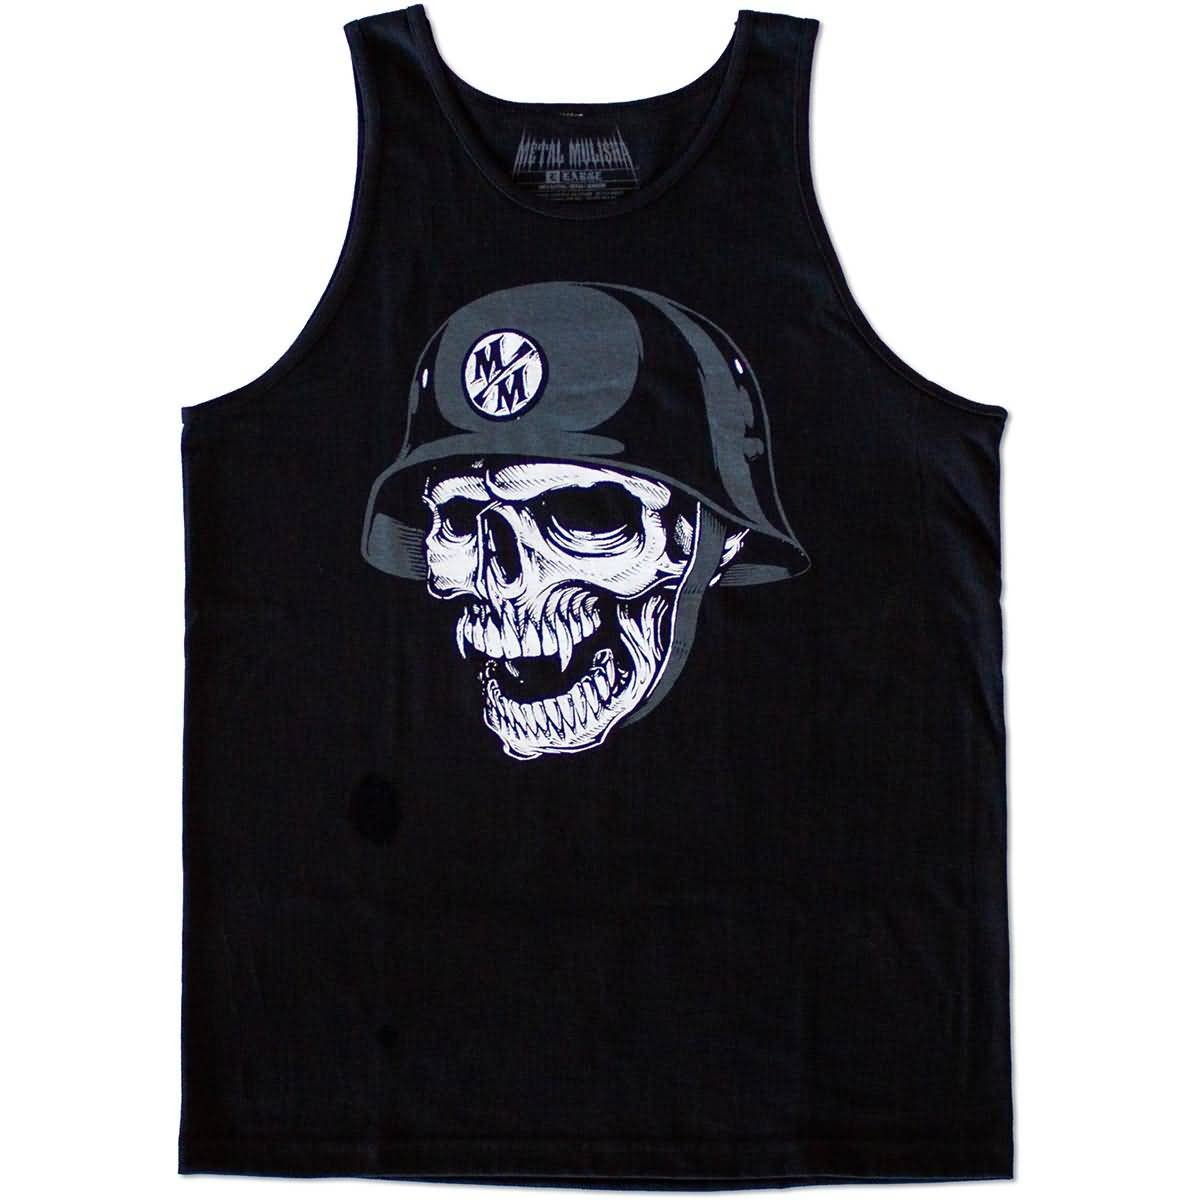 Metal Mulisha Men's Institutionalized Tank Top